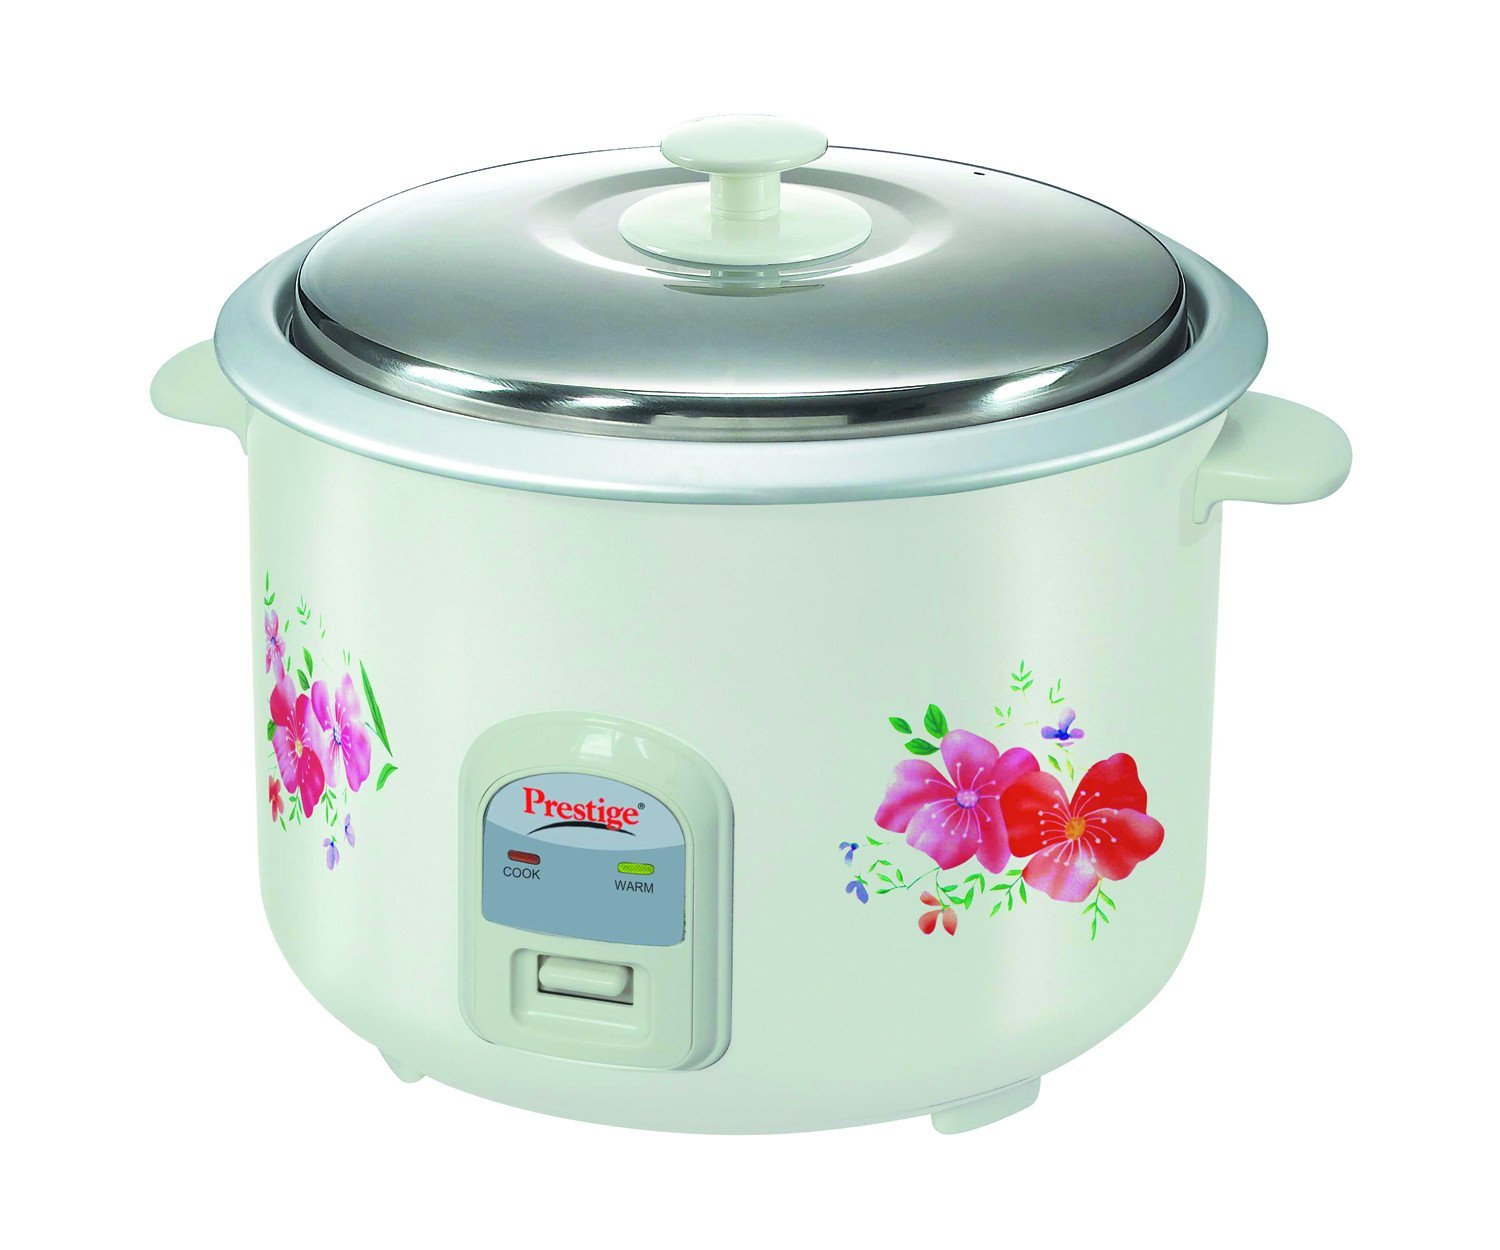 Top 10 Electric Rice Cookers in India 2020 Reviews & Buying Guide - Pressure Cooker